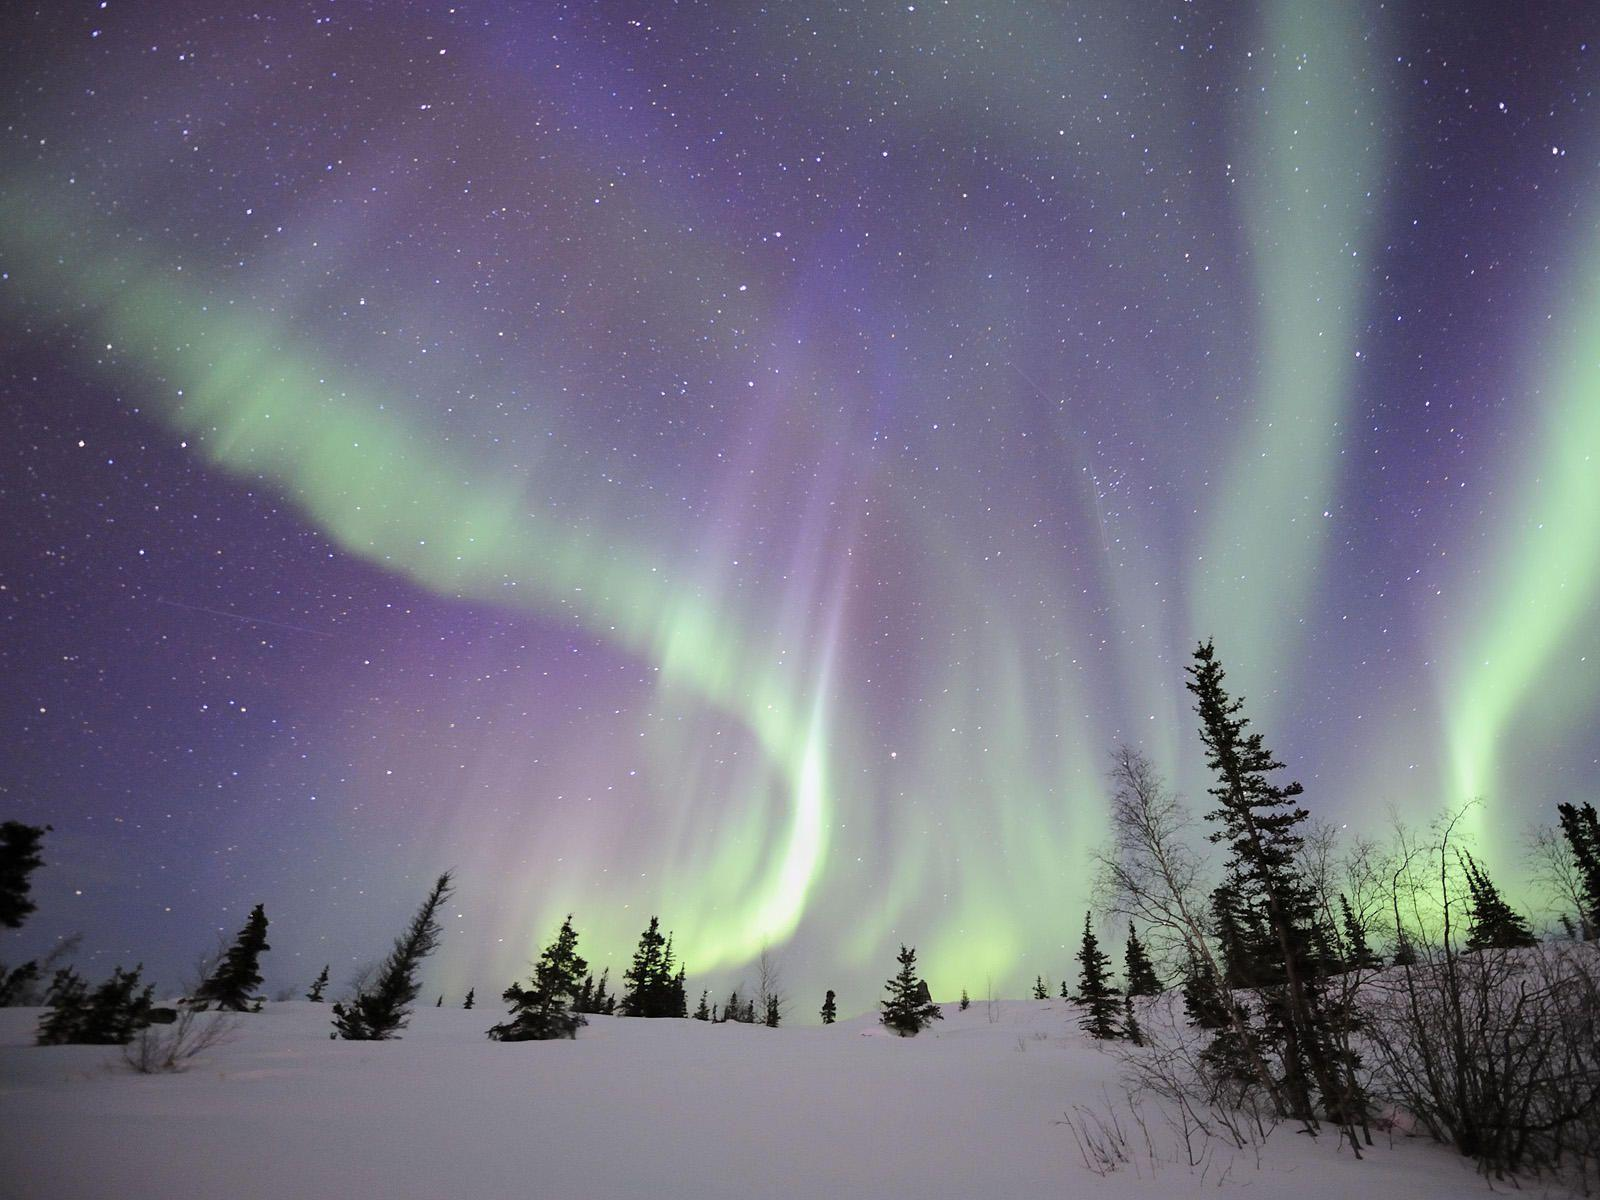 Northern Lights Wallpapers Free - Wallpaper Cave